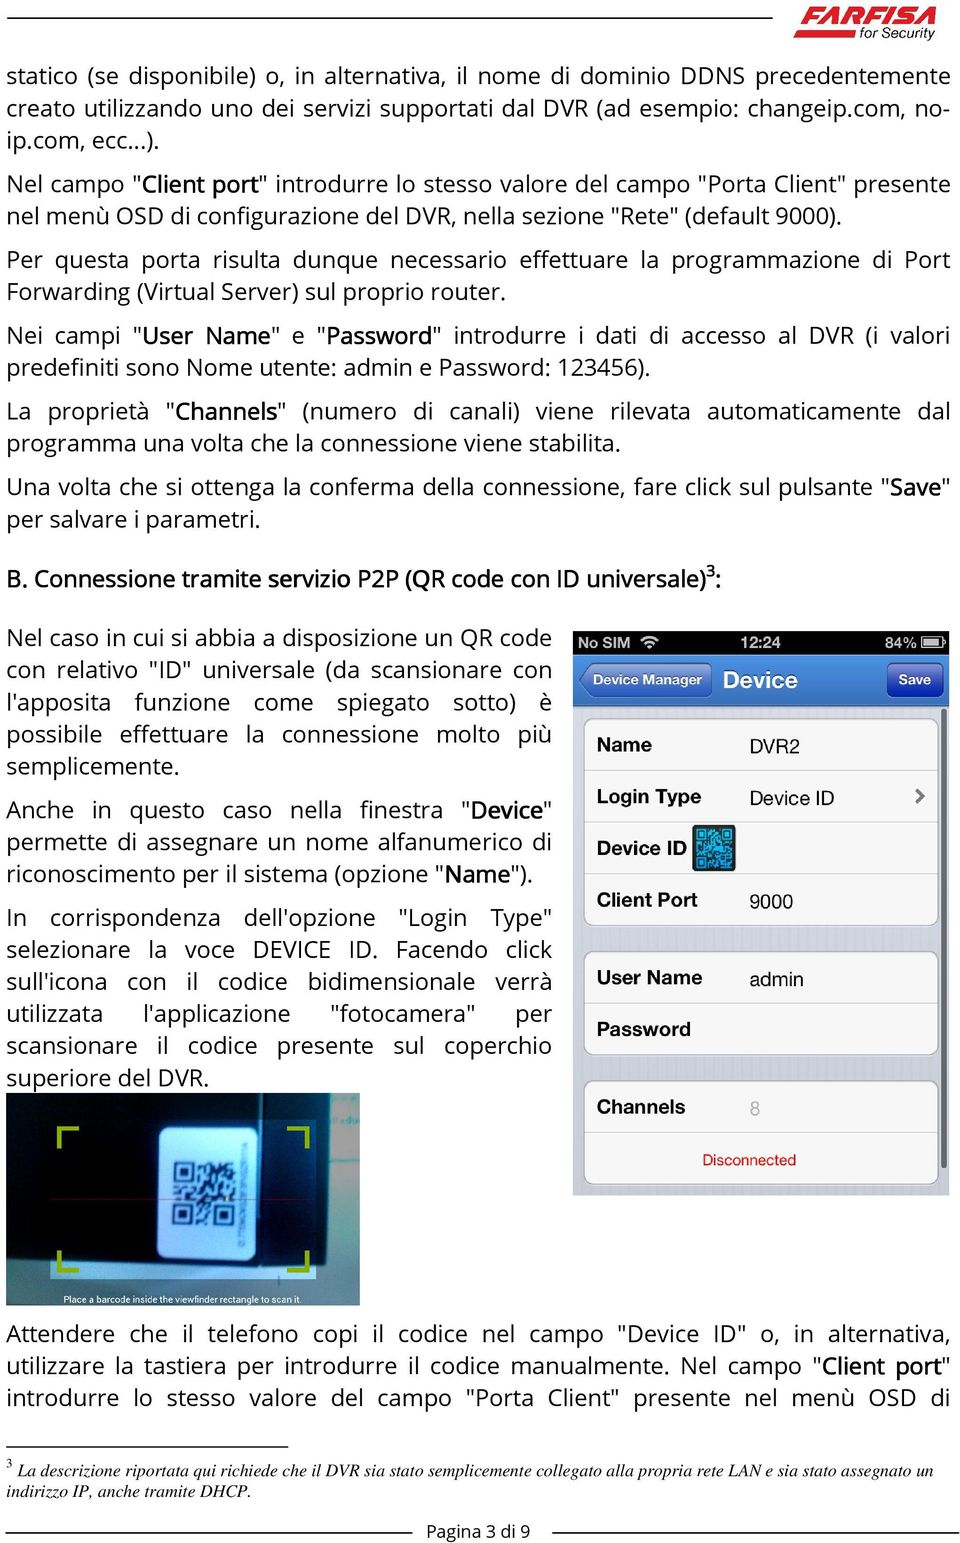 "Nei campi ""User Name"" e ""Password Password"" introdurre i dati di accesso al DVR (i valori predefiniti sono Nome utente: admin e Password: 123456)."